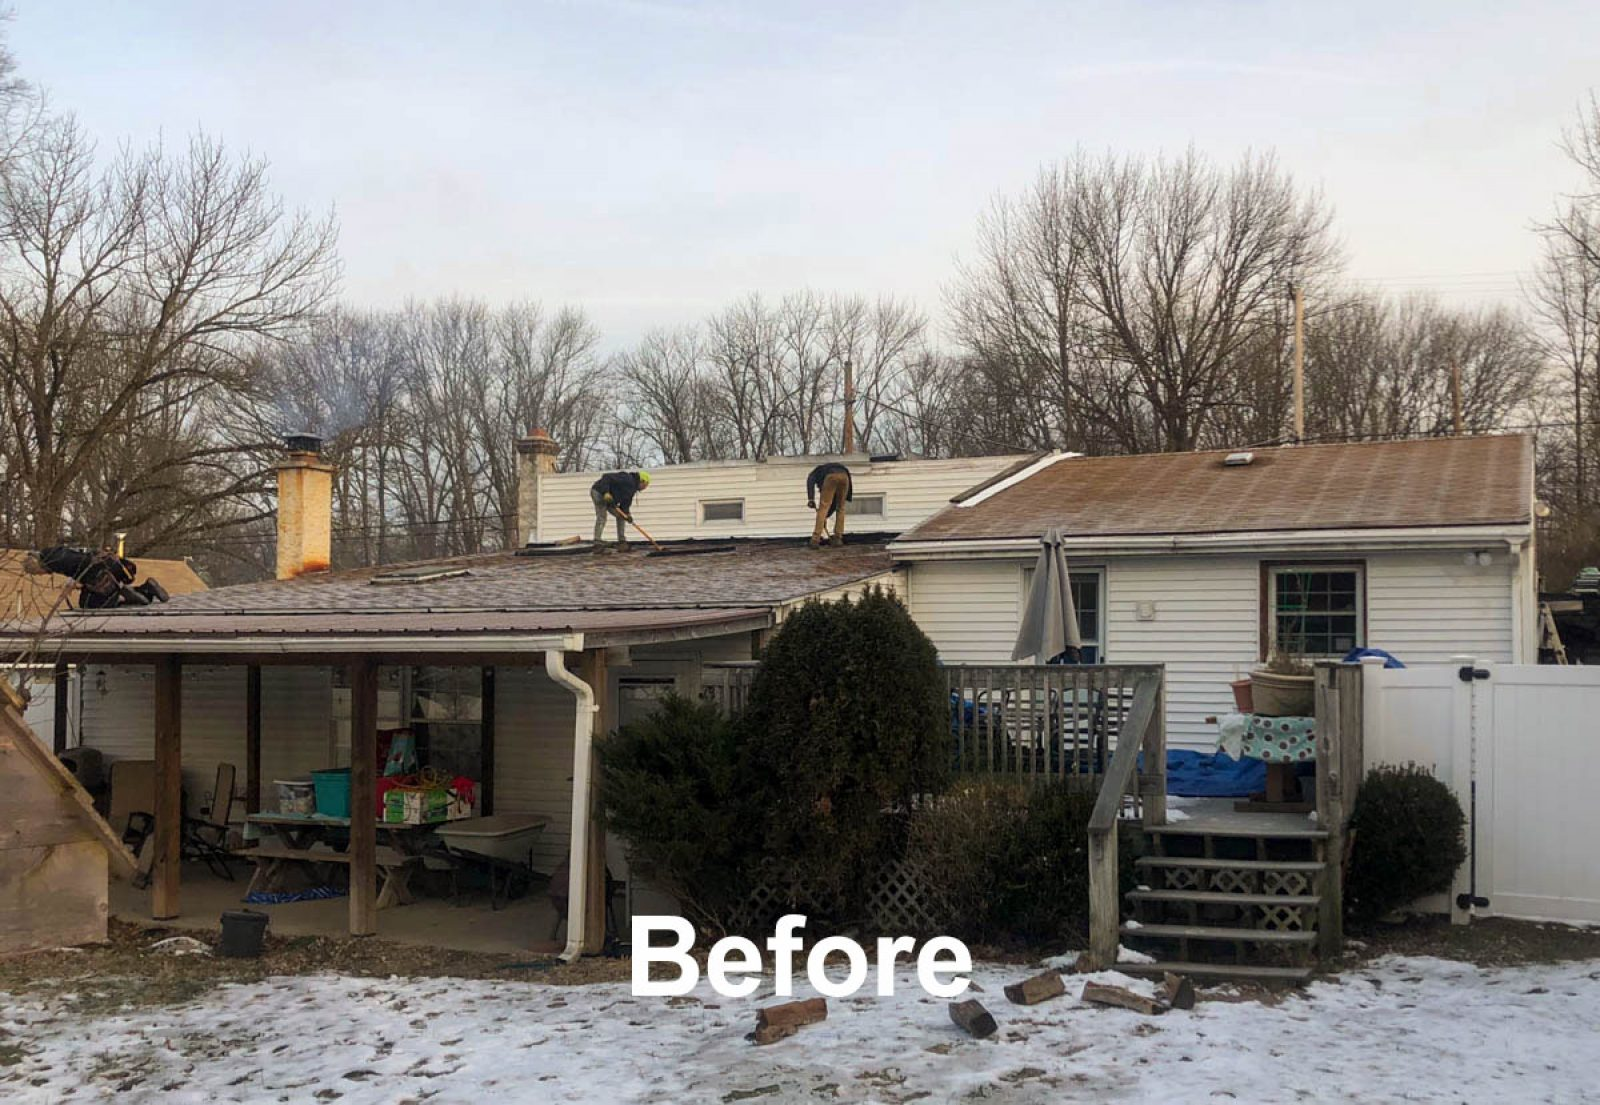 Old Shingle Roof getting replaced by metal roof